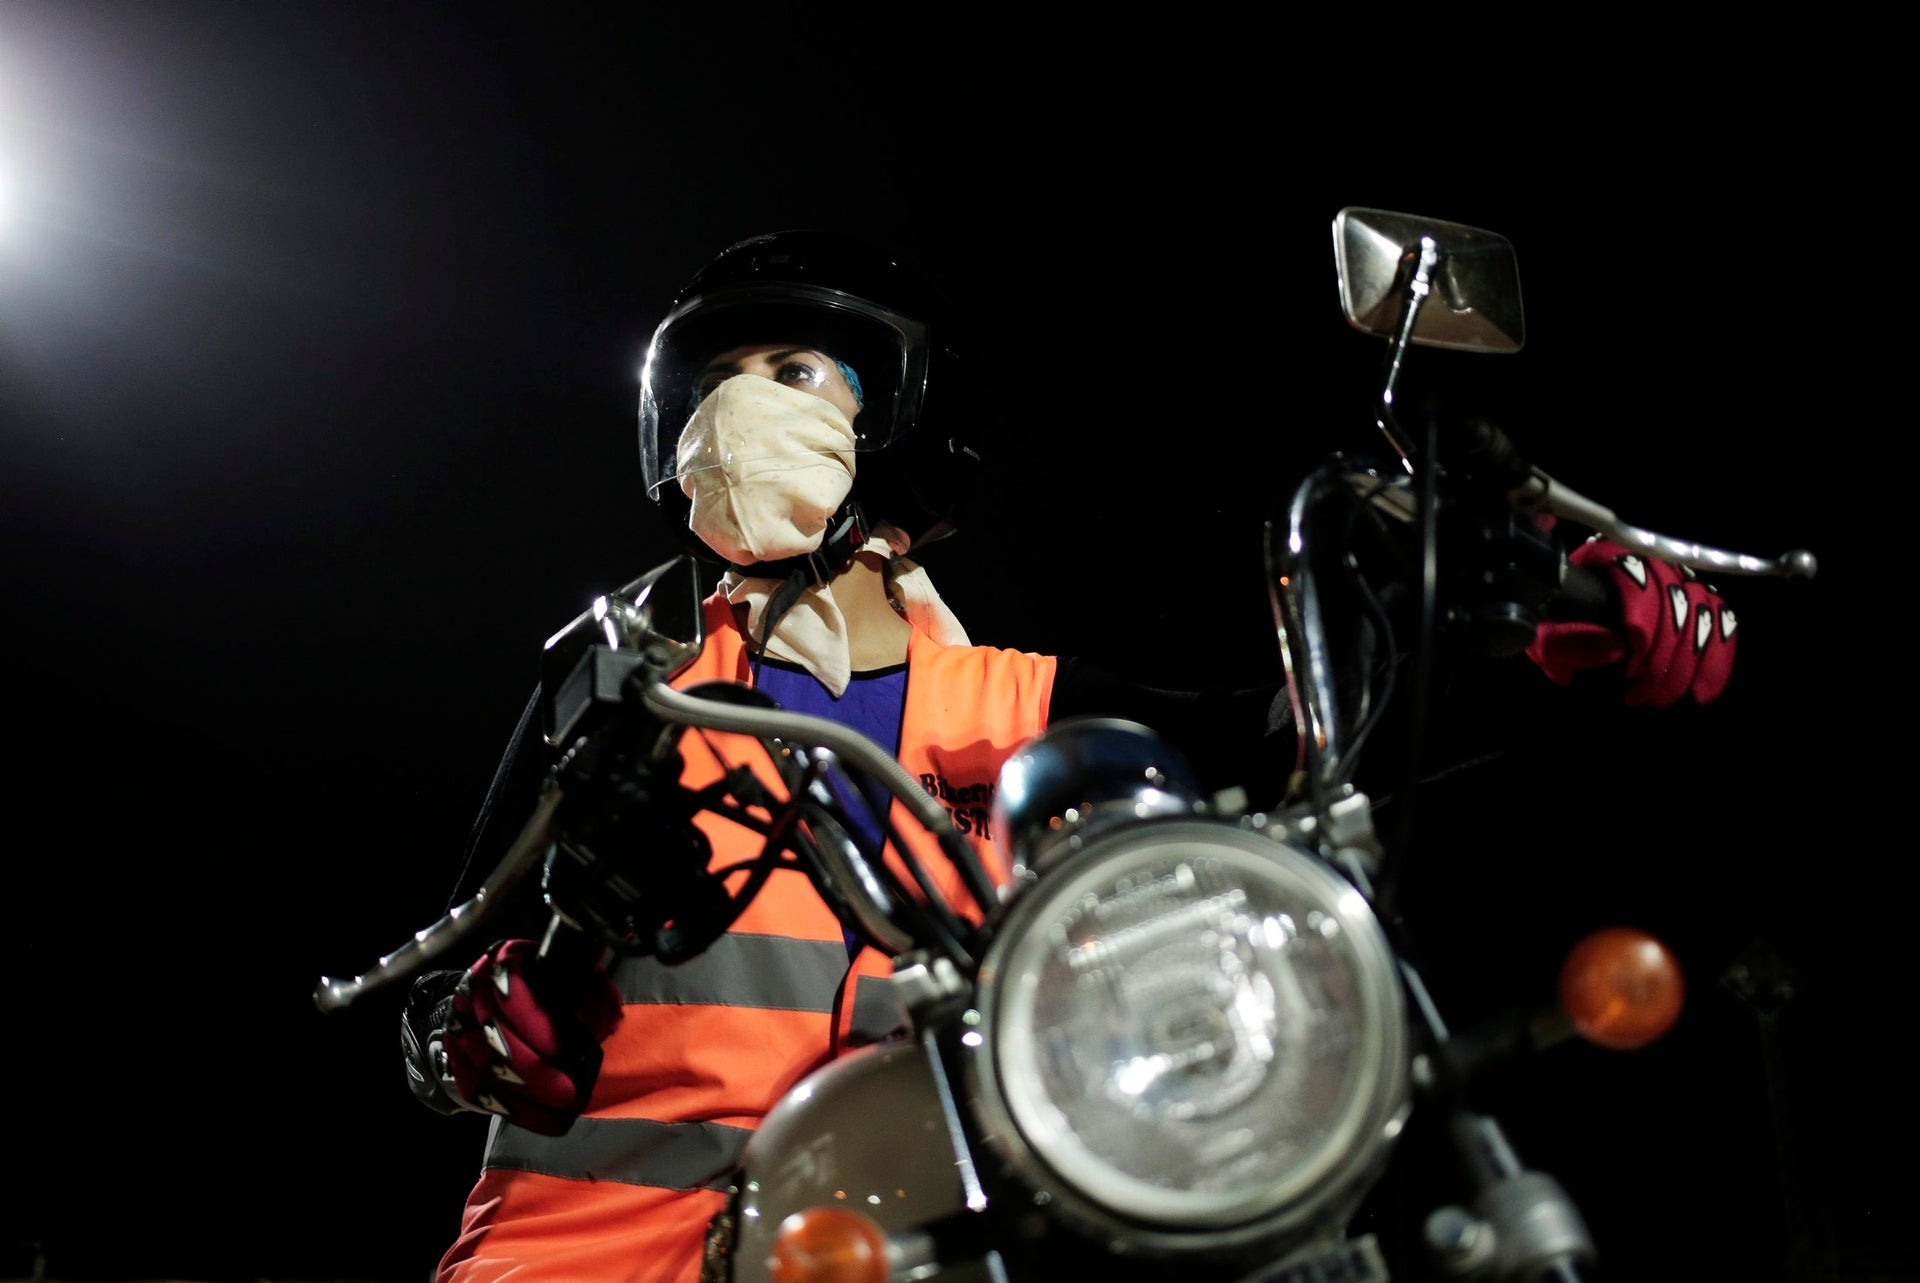 In this June 23, 2018 photo, Maha Mohammed poses for a photograph on a motorbike as she learns how to ride, at the Bikers Skills institute in Riyadh, Saudi Arabia. As Saudi Arabia prepares to lift a ban on women driving, Saudi women are being pushed to the forefront of a major transformation being spearheaded by the country's Crown Prince Mohammed bin Salman. It also places women in the crosshairs of a decades-old pull-and-tug between Saudis agitating for more social openings and a majority that remains deeply conservative.